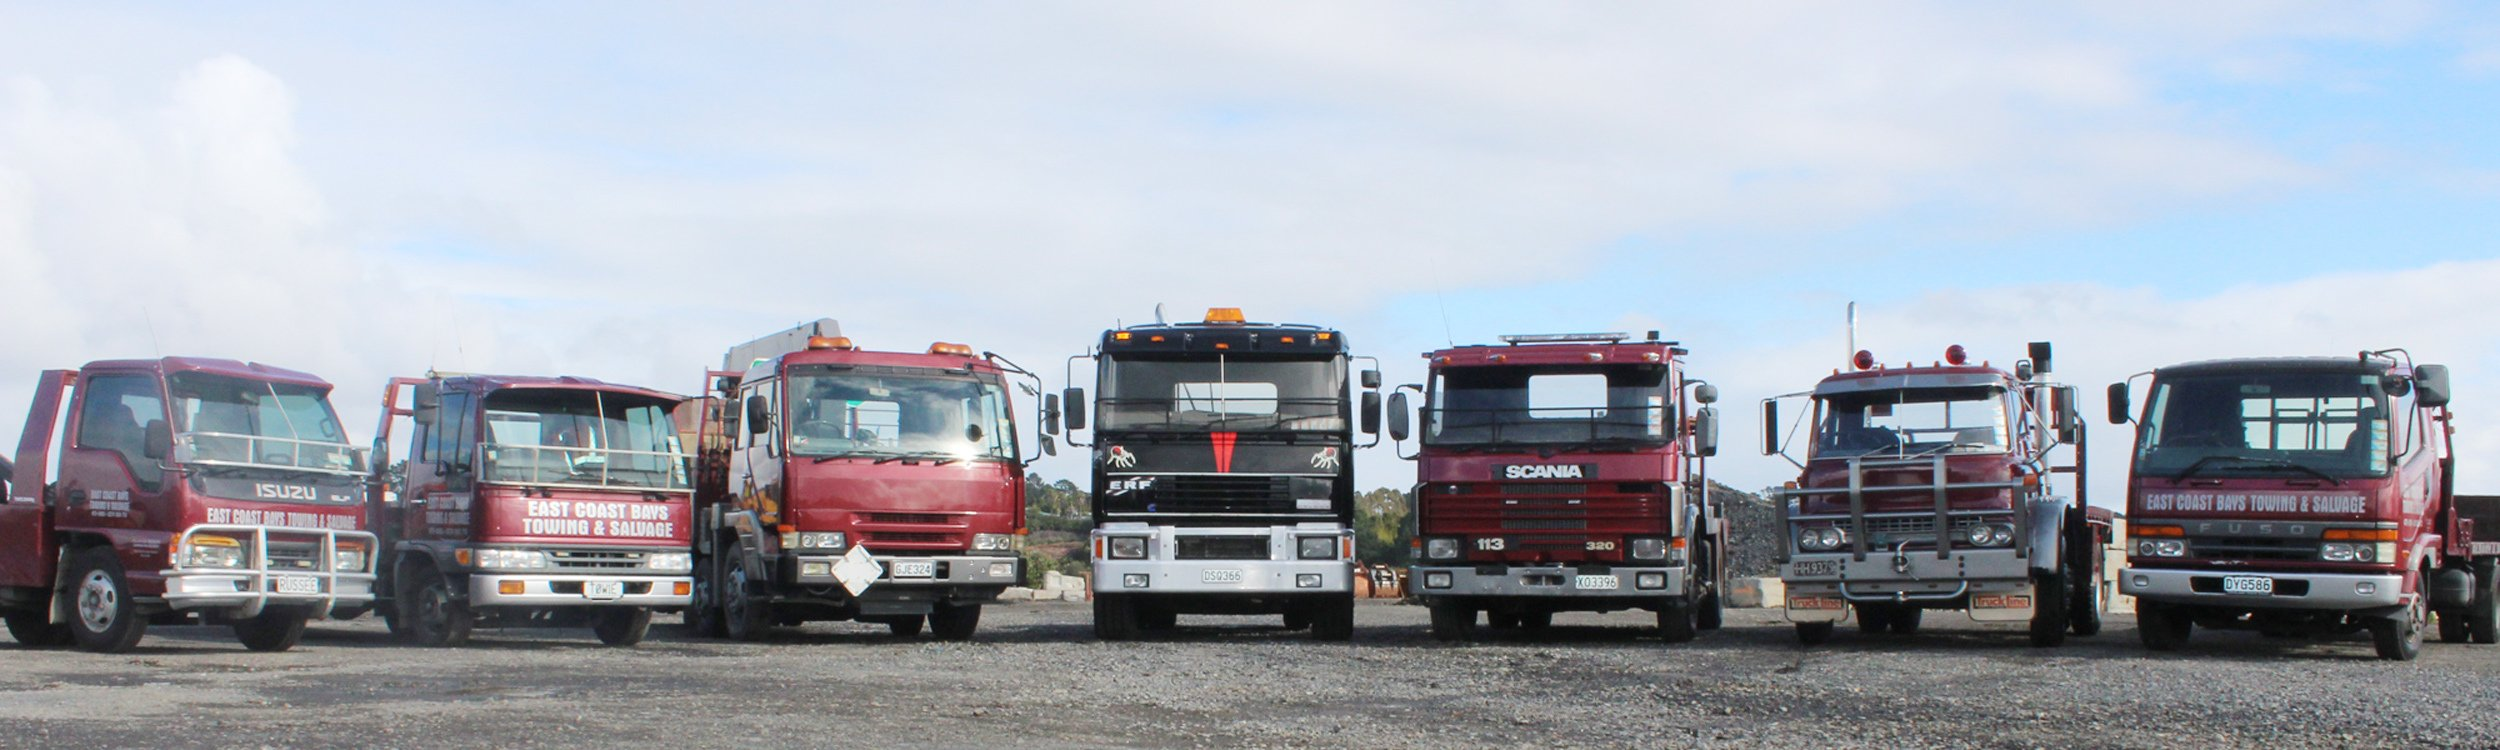 Towing vehicles used by the professionals